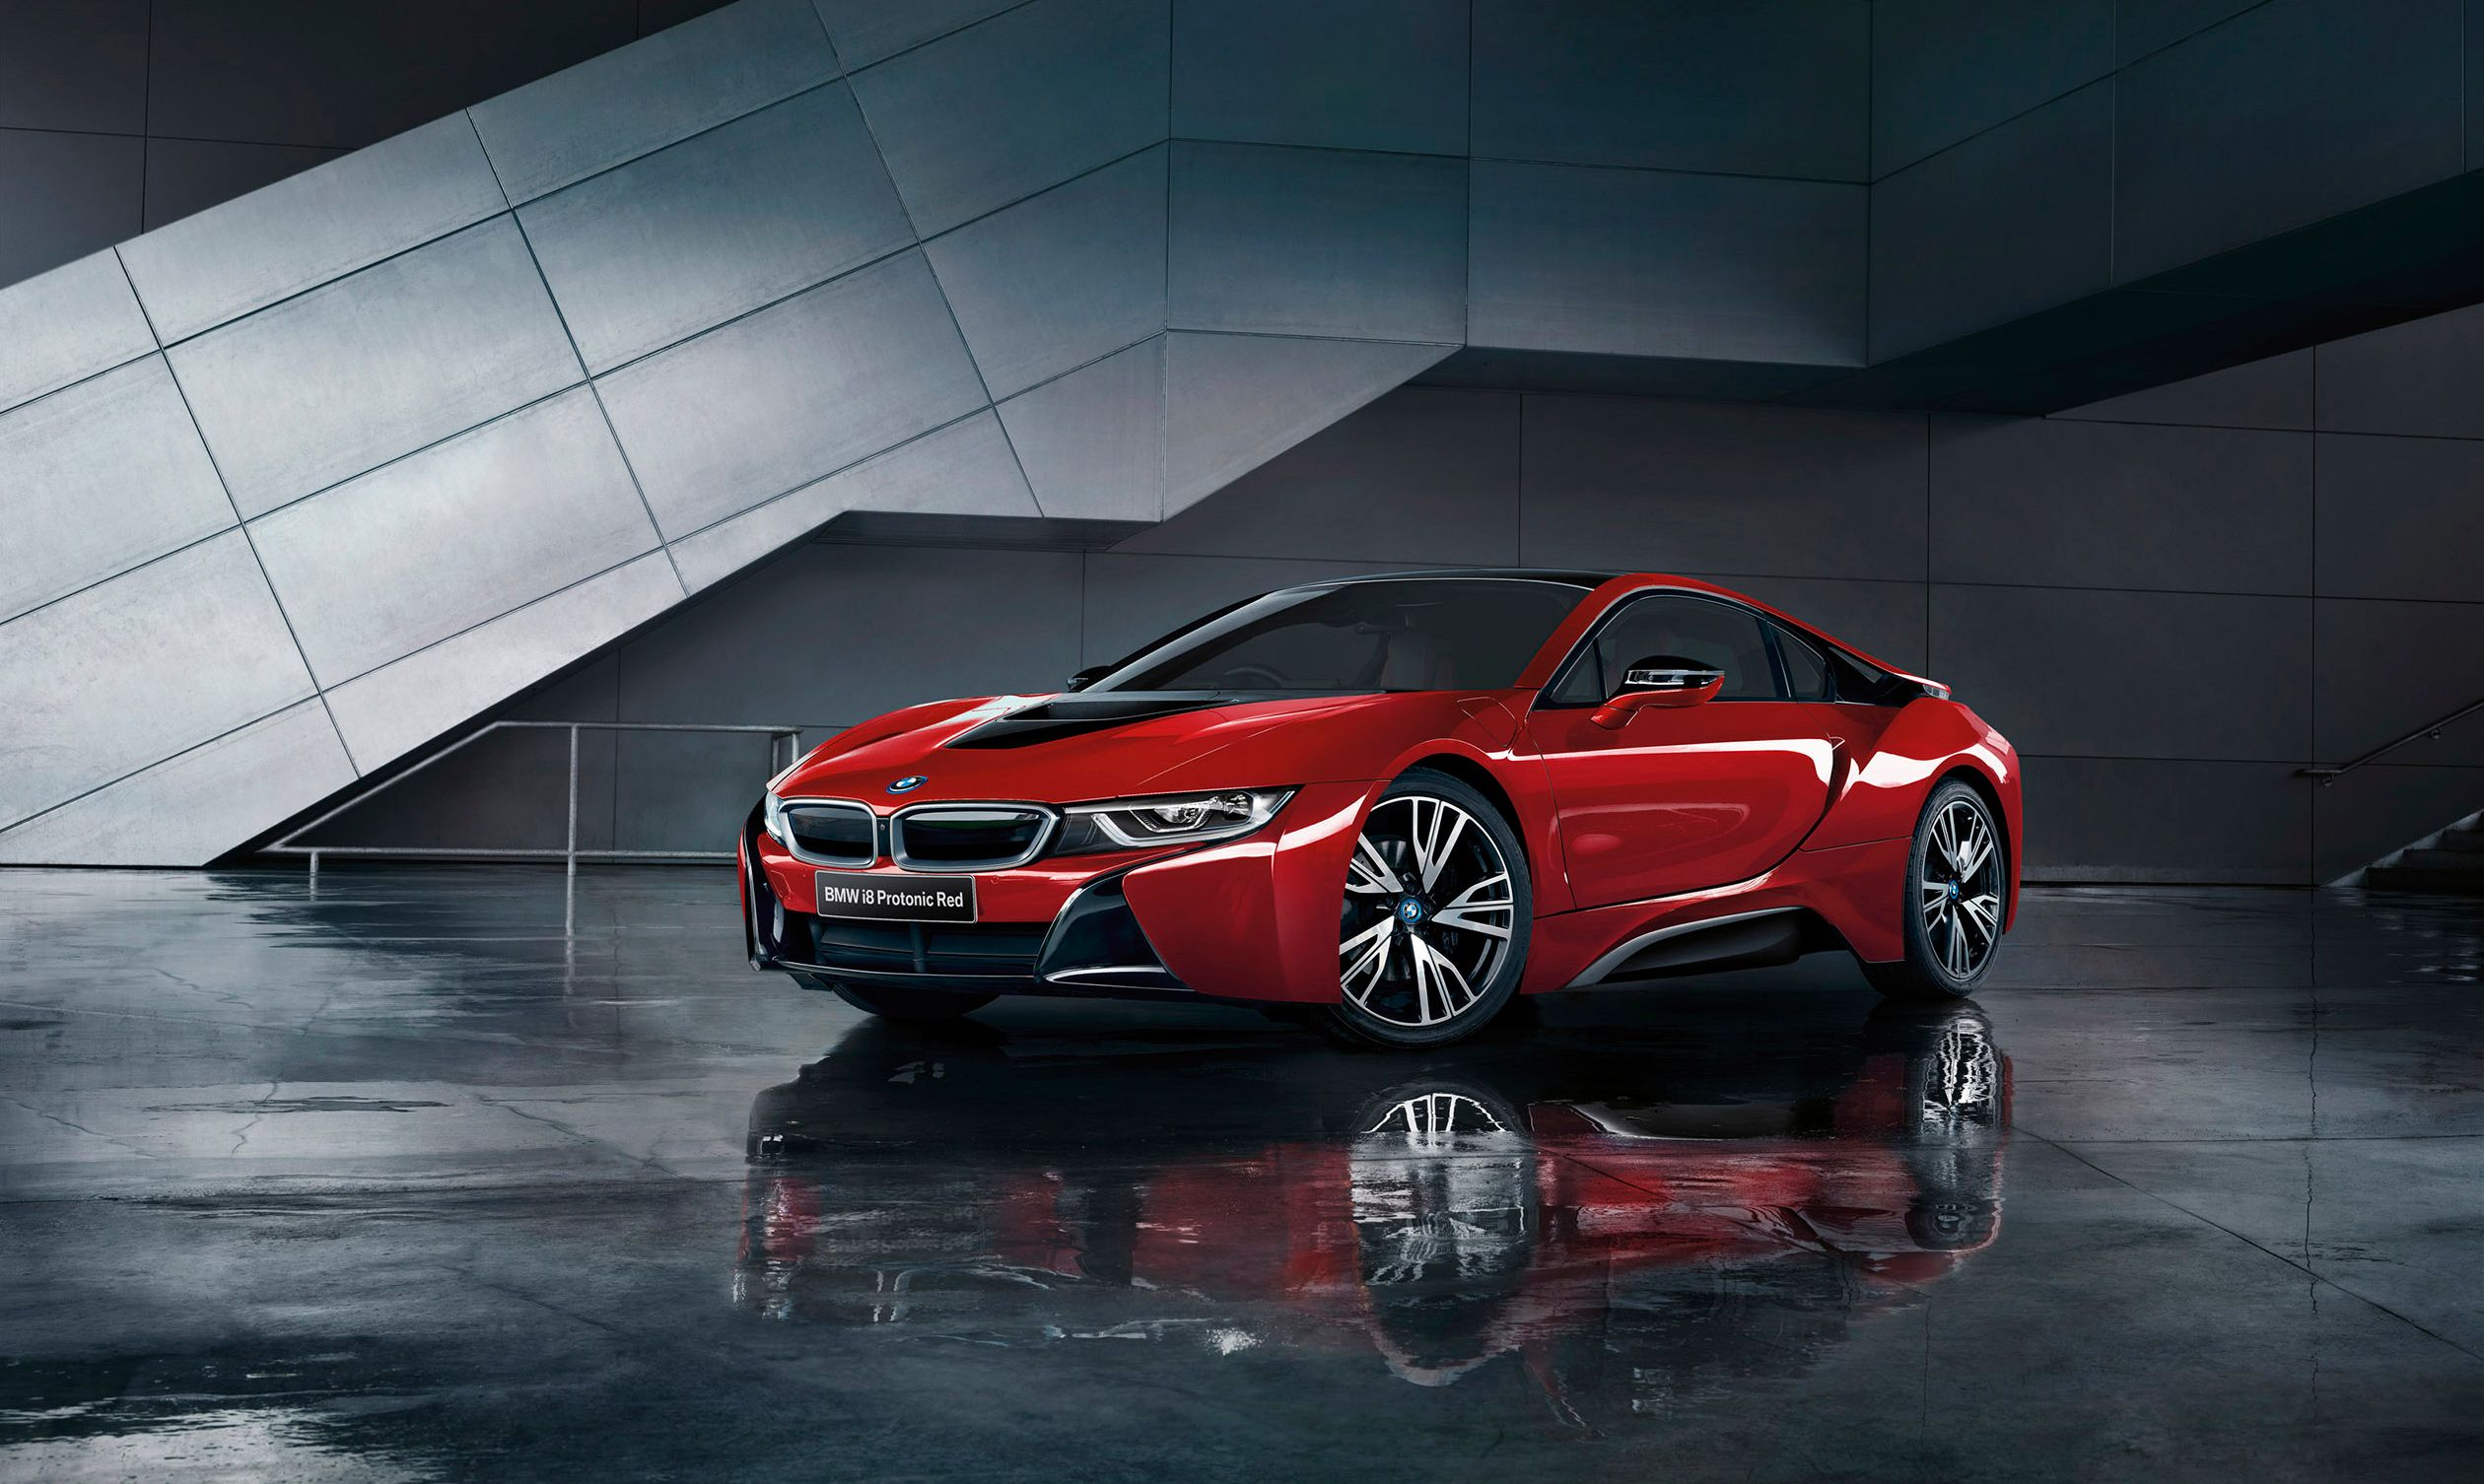 Protonic Red Background Bmw I8 Bmw Super Cars